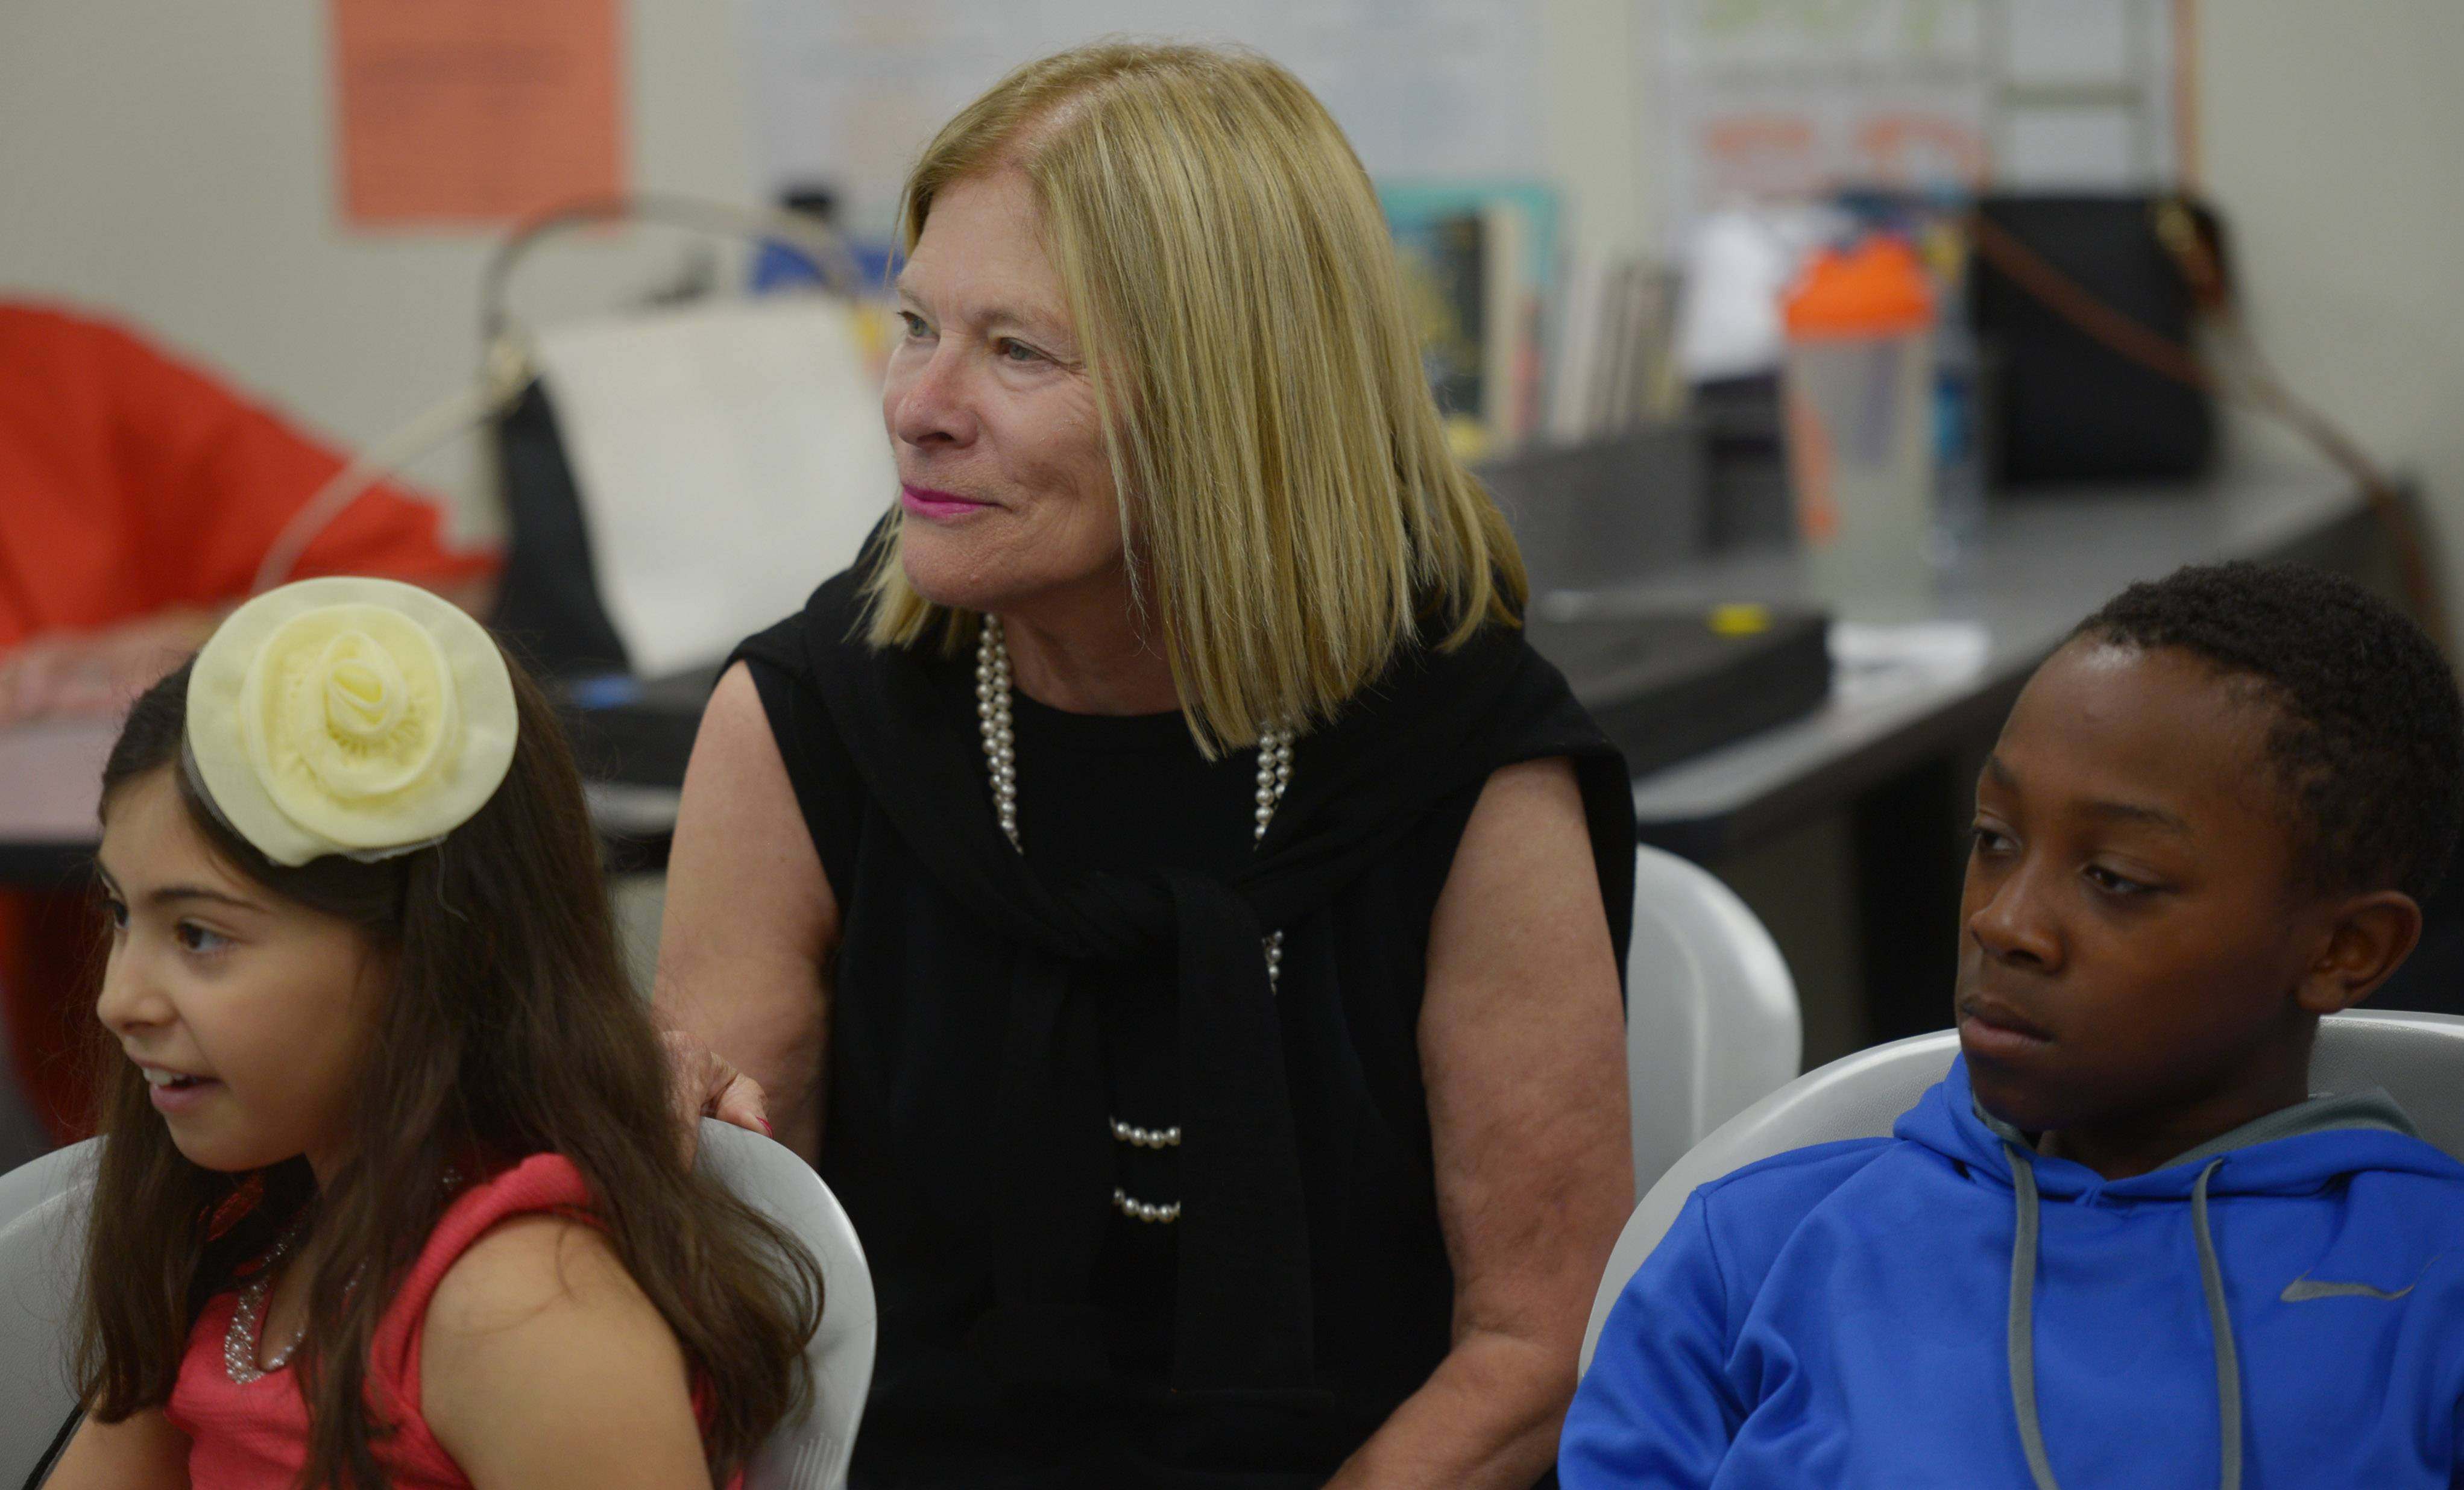 Margaret Policastro, founder and director of Roosevelt University's Schaumburg summer reading clinic for area youngsters, observes a lesson while seated with students Christina Sourounis, 8, left, and Micah Rienstra-Kracofe. The reading program celebrates its 30th year this year.